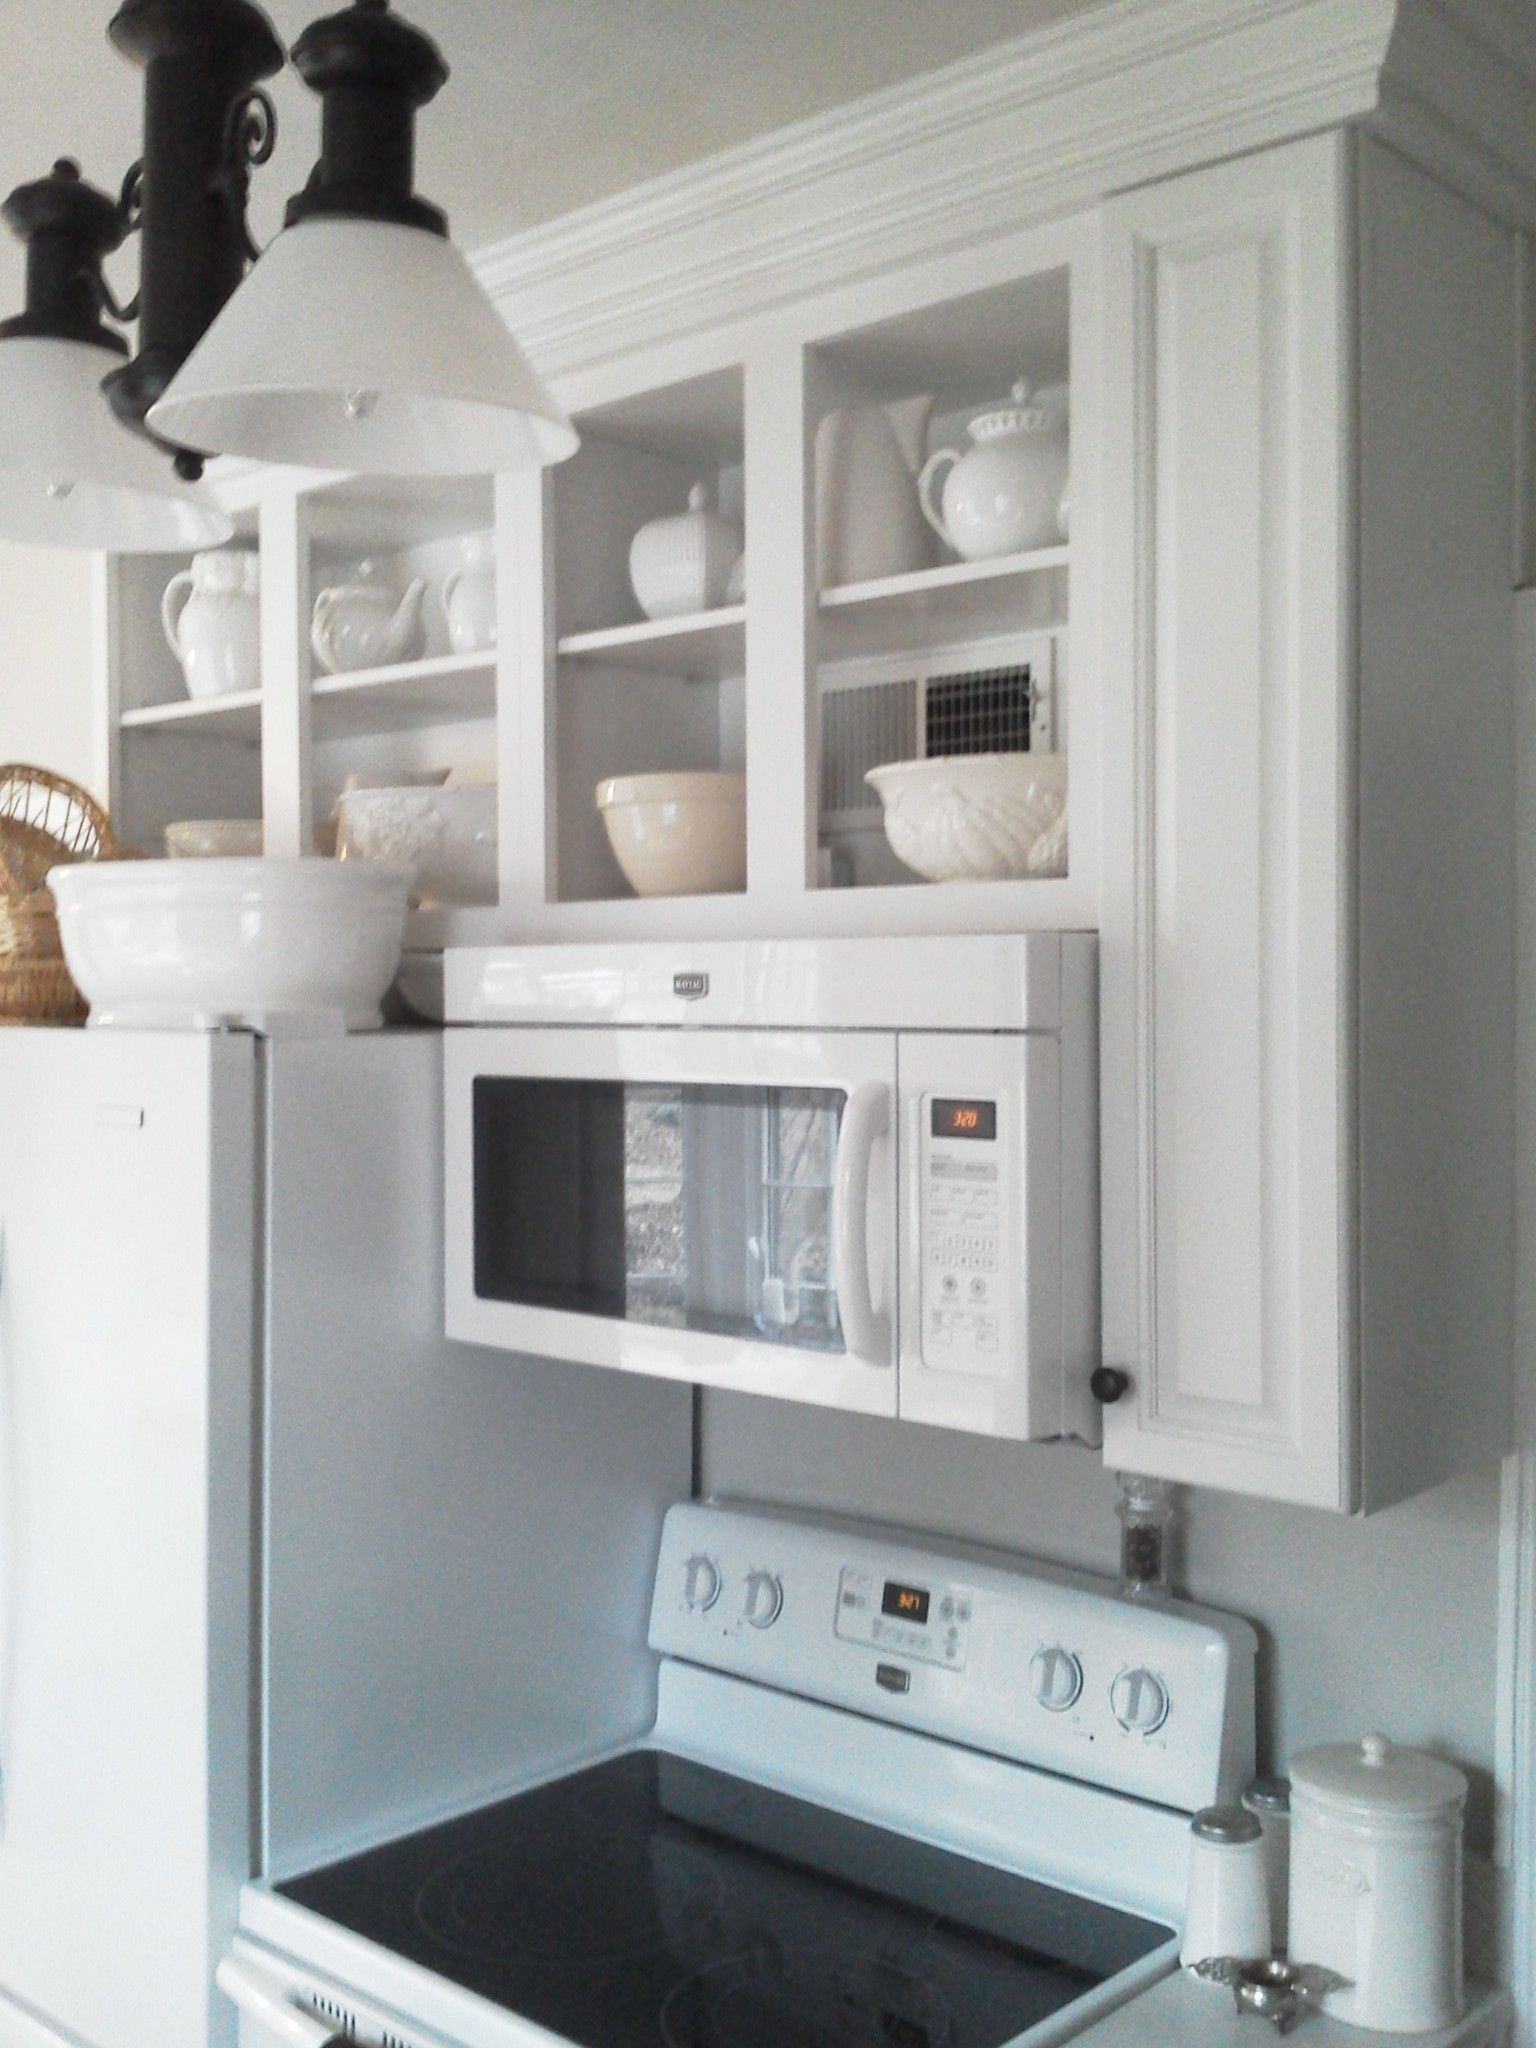 above+microwave+cabinets | wooden open cabinet kitchen ideas with